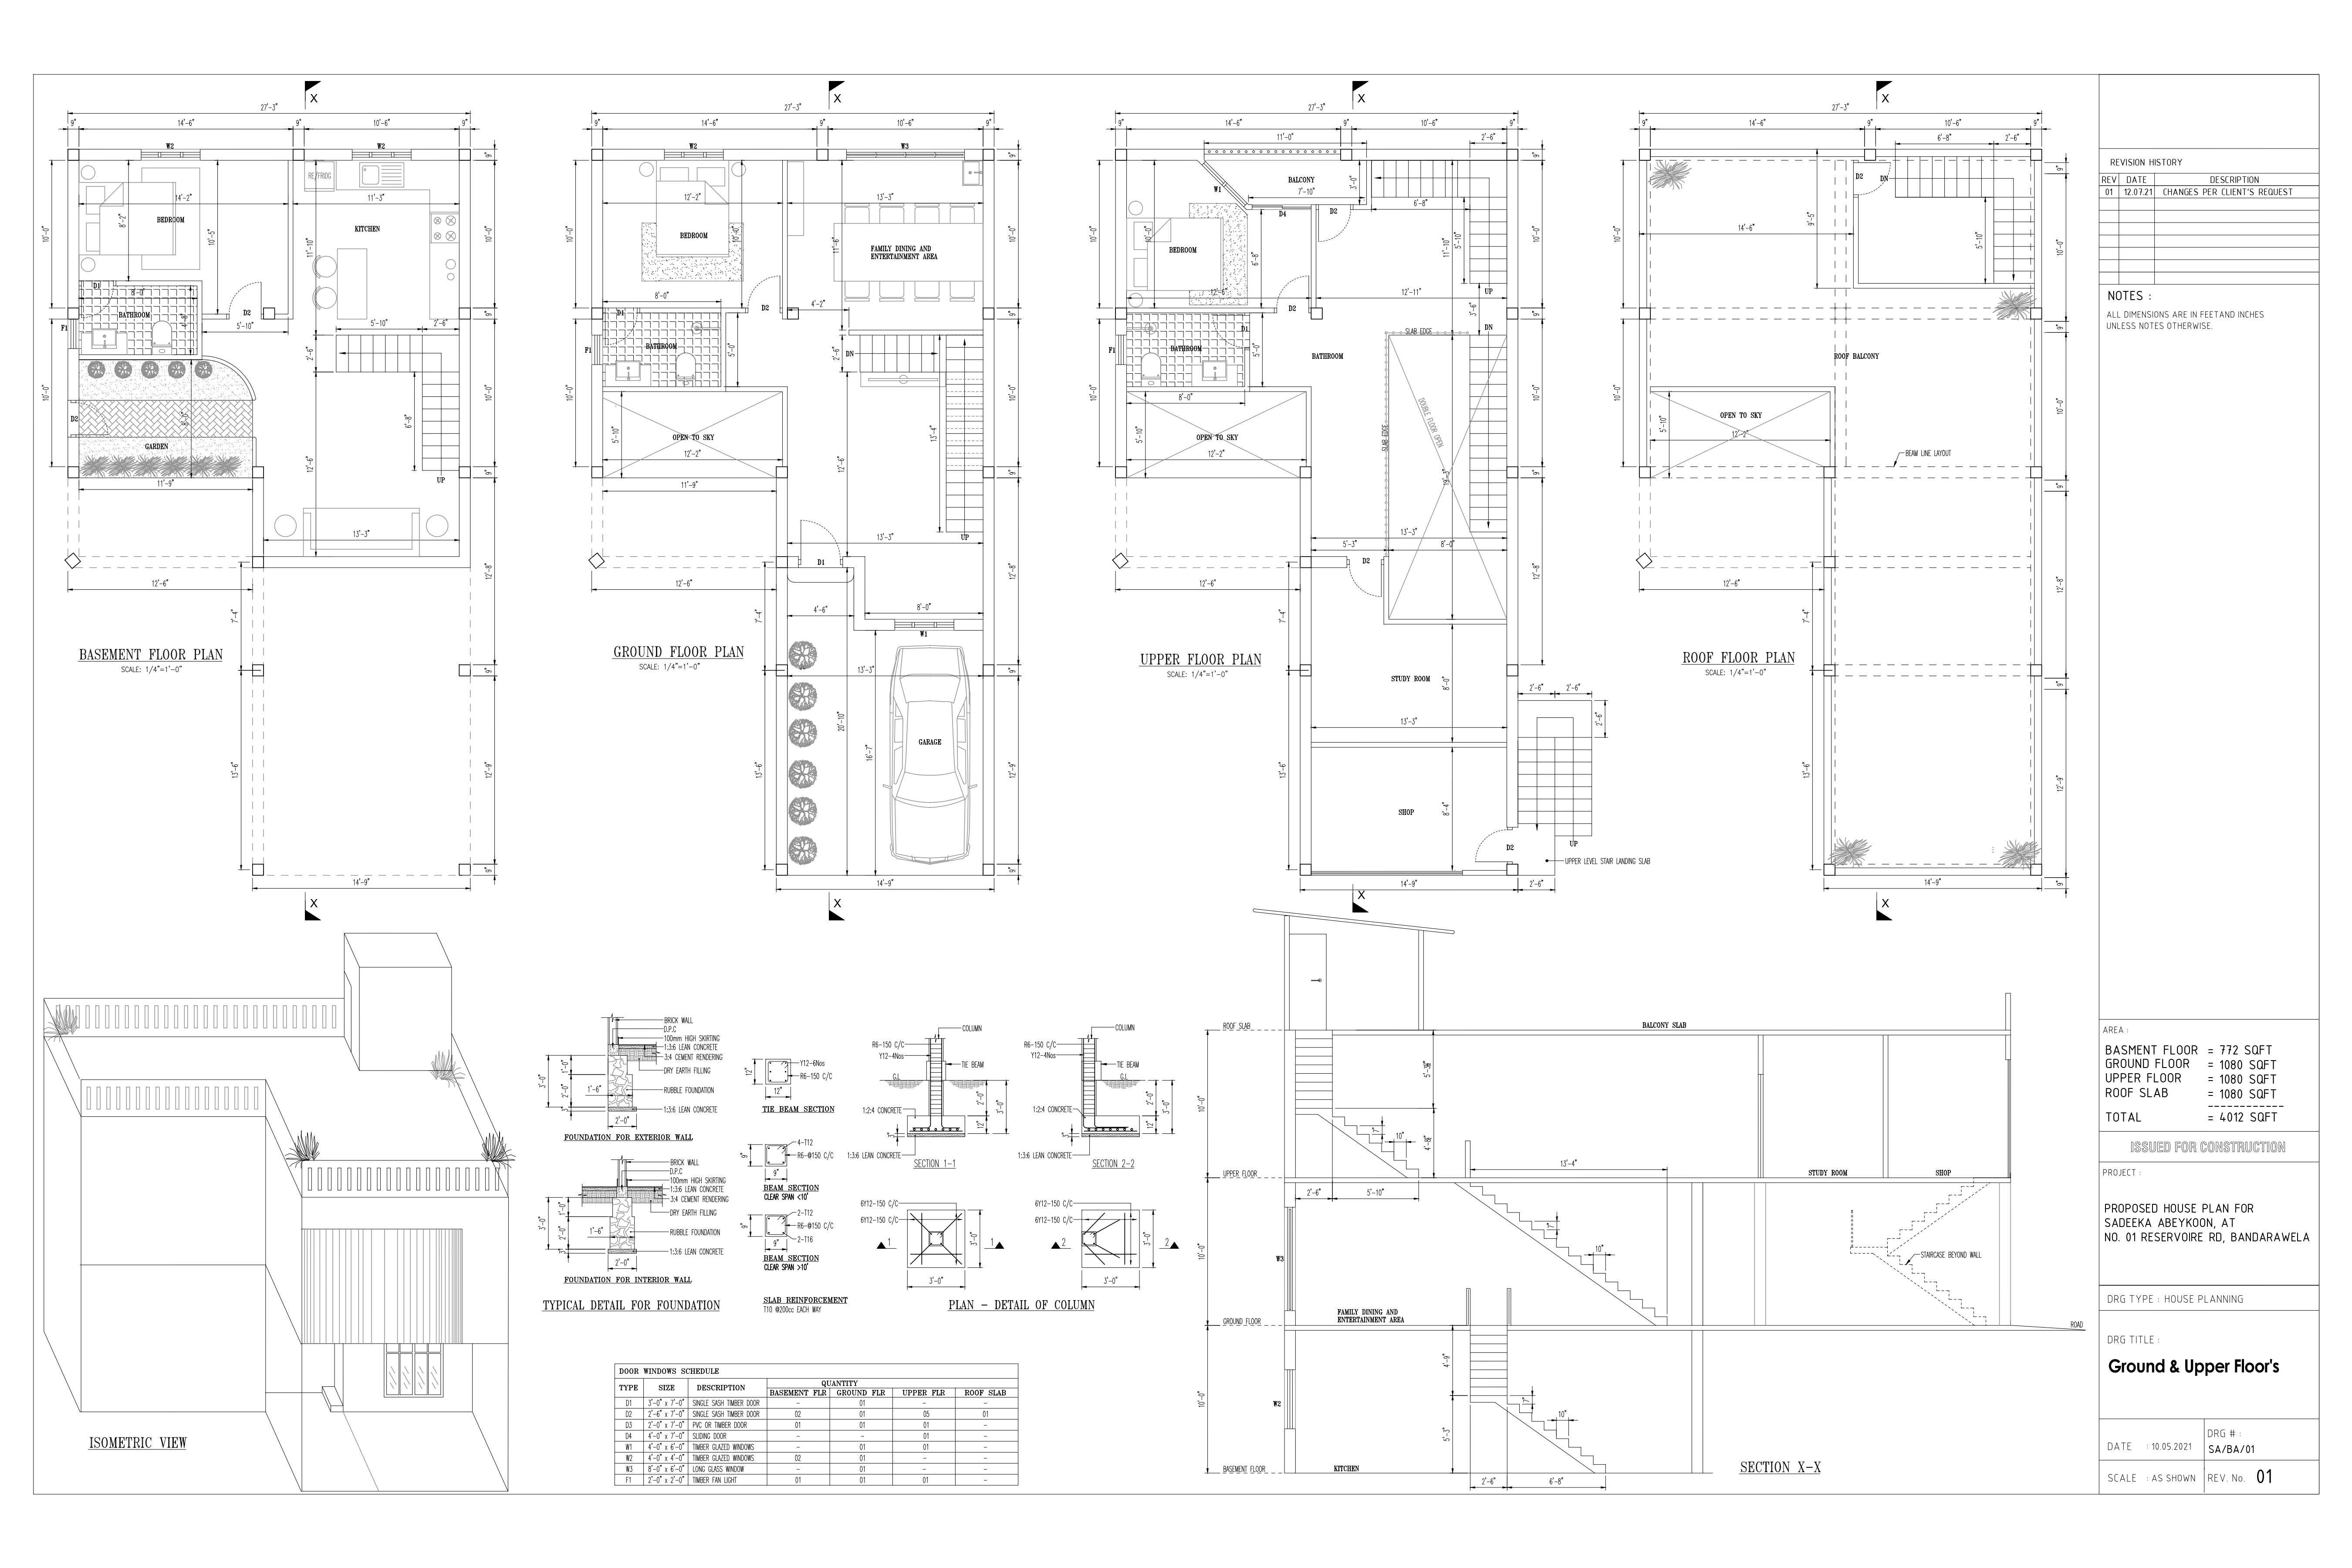 I Will do convert PDF, Image or Hand sketch to AutoCAD drawings 2d floor plan